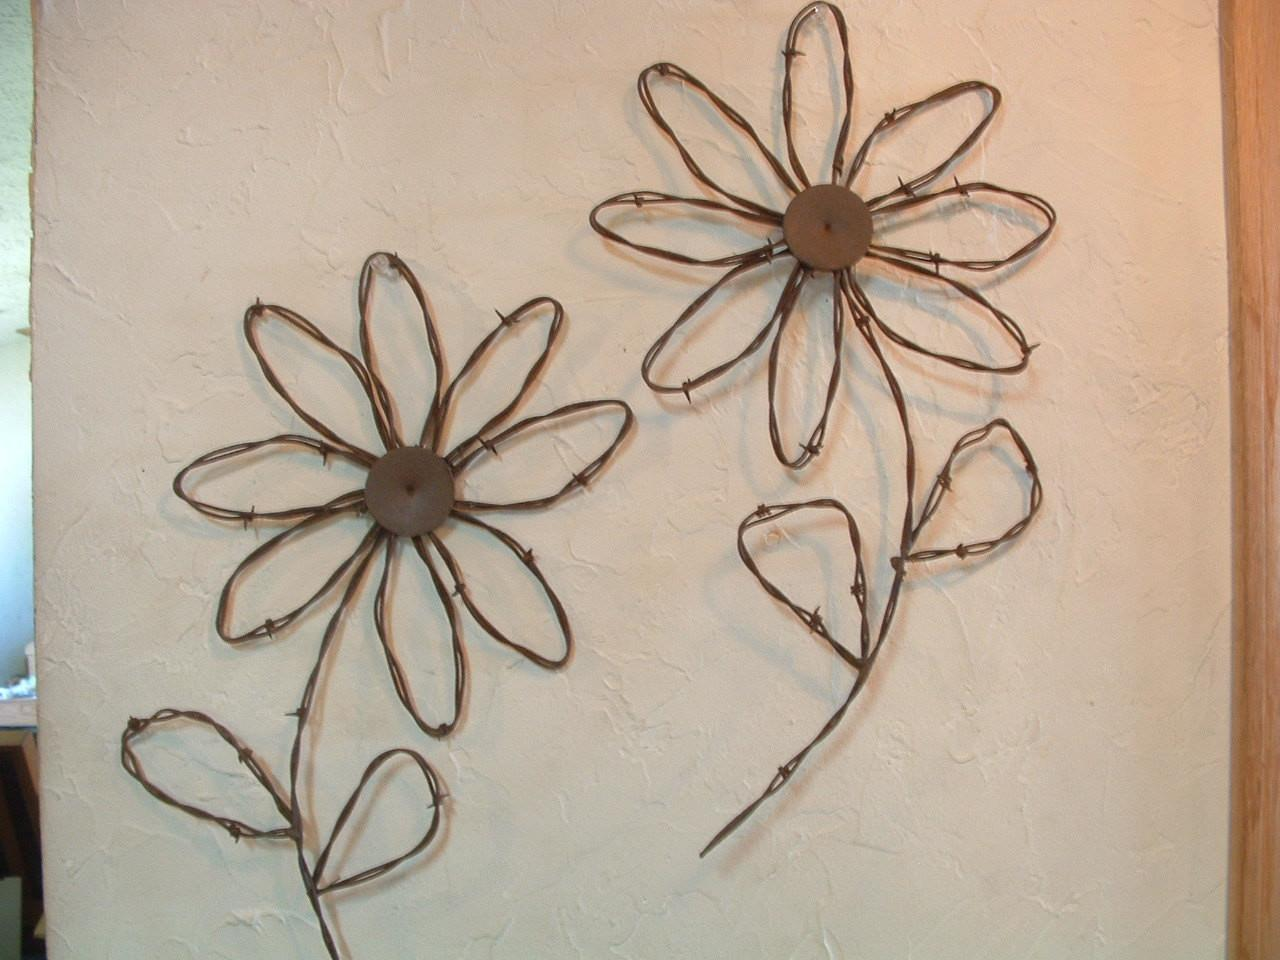 Rustic Western Rusty Barbed Wire Sunflower Wall Decor Set